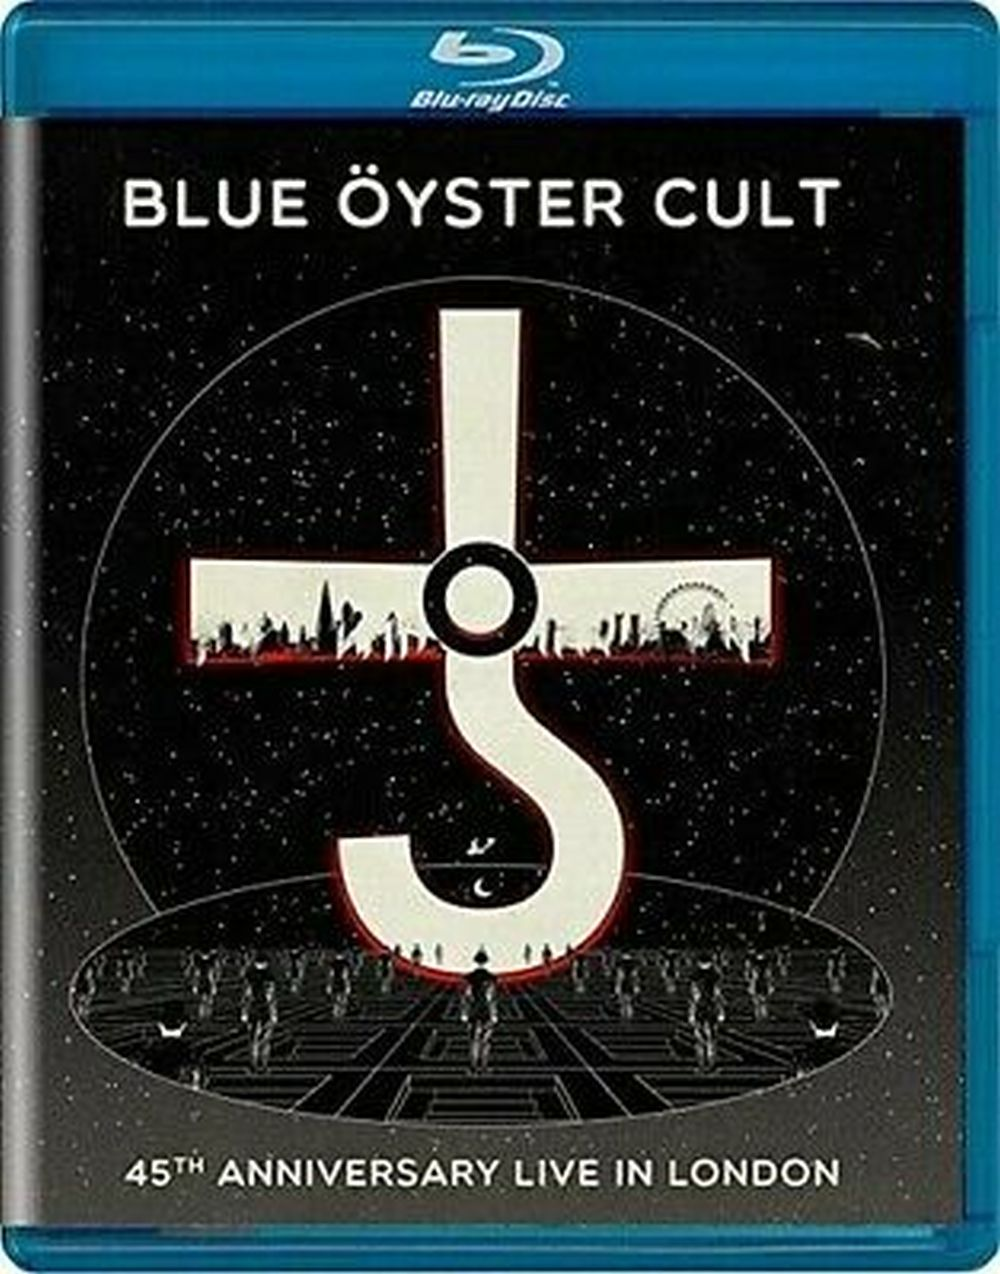 Blue Oyster Cult - 45th Anniversary Live In London (RA/B/C) - Blu-Ray - Music